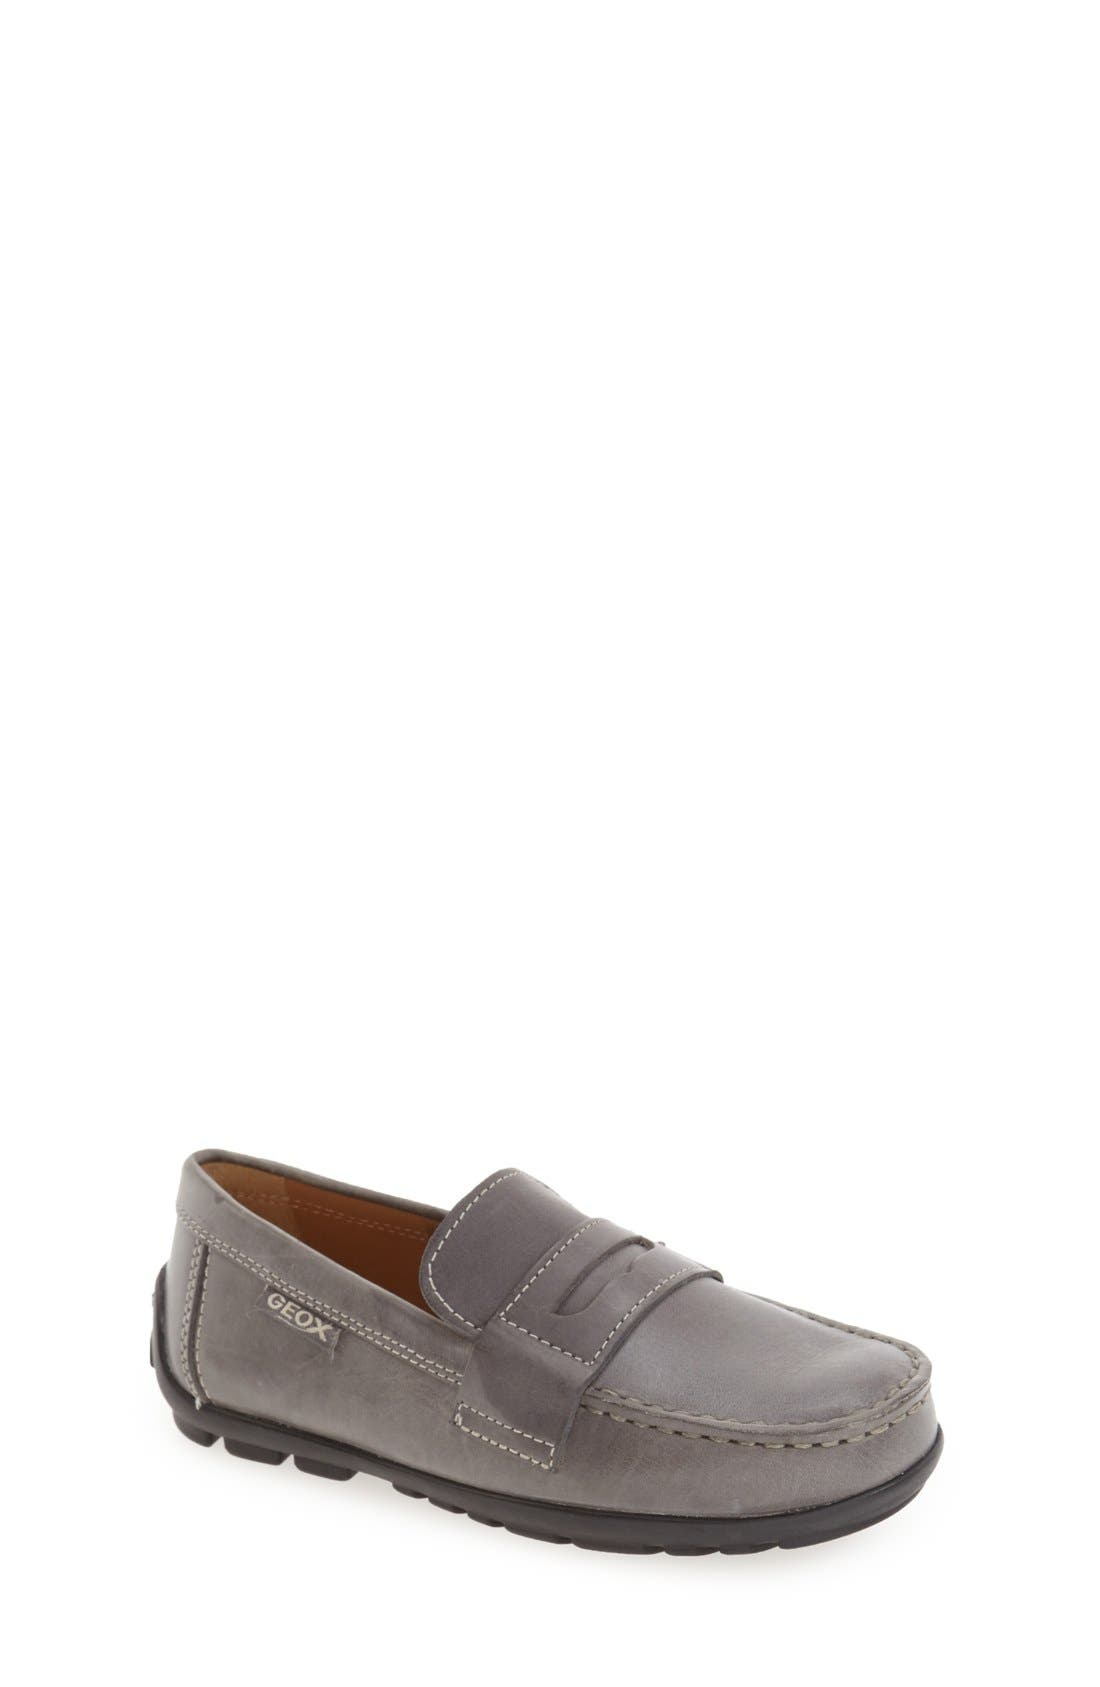 'Fast' Penny Loafer,                             Main thumbnail 1, color,                             020